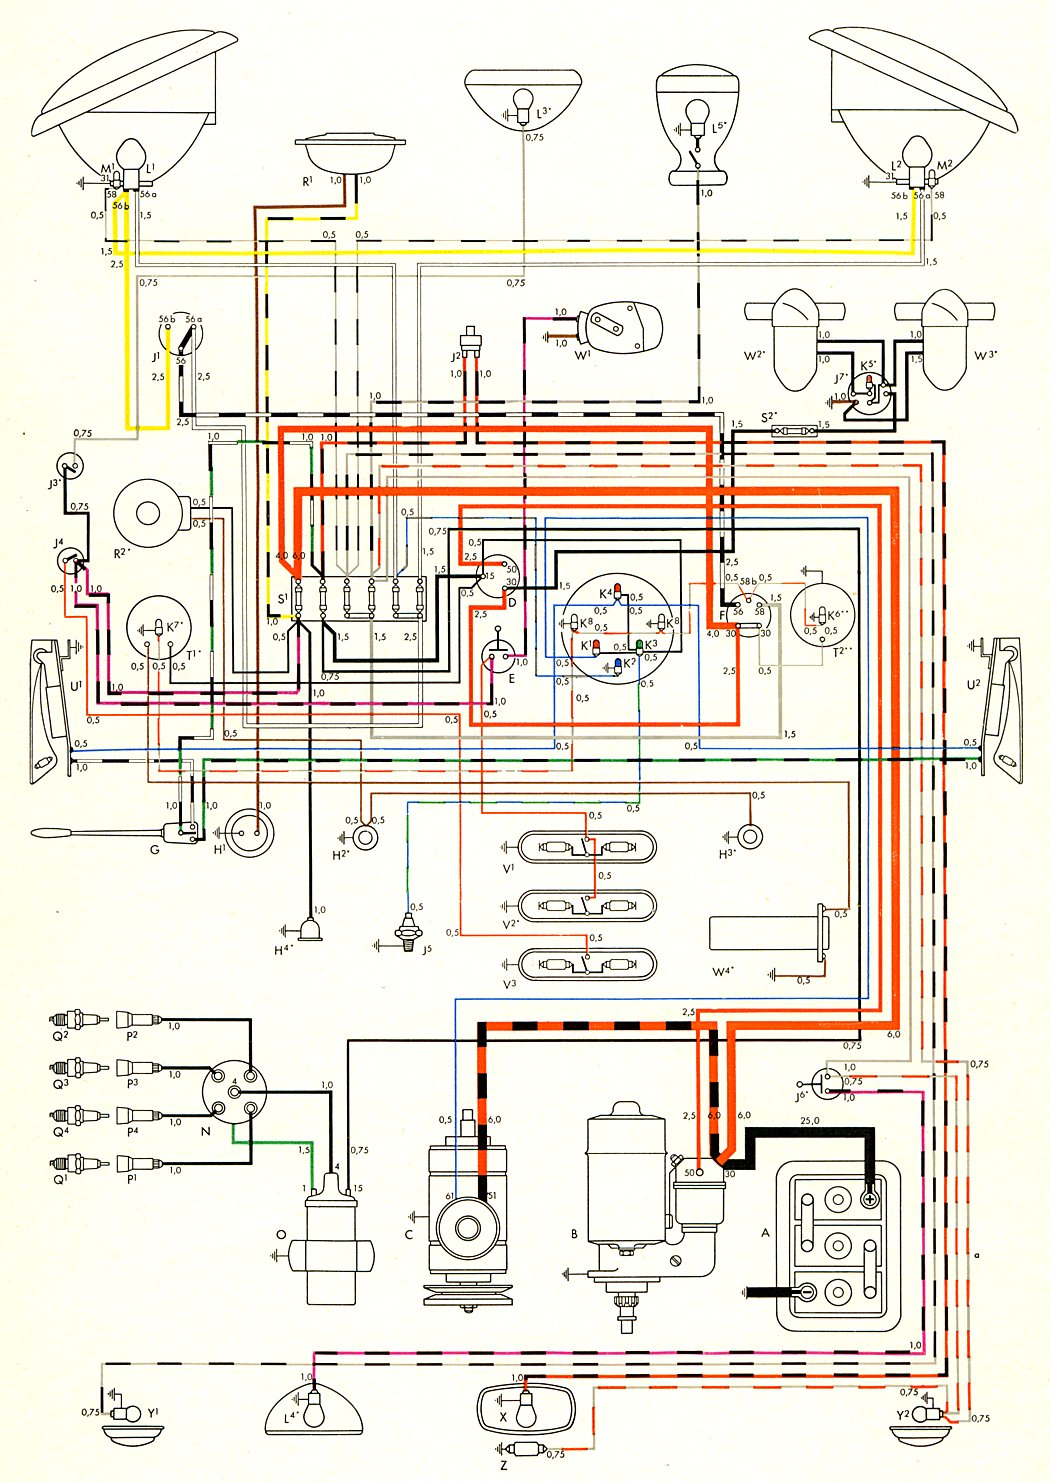 72 chevy starter wiring diagram with Wiring Diagram Vw Beetle Parking Lights on Wiring Diagram Vw Beetle Parking Lights in addition Showthread moreover 1972 Karmann Ghia Wiring Diagram also 3785168 Maf 5 Pin Ls6 Wiring To 5 Pin Ls7 Mass Air Flow Sensor also 6o5pc Pont Firebird 1967 Pont Firebird 455 76 Motor.